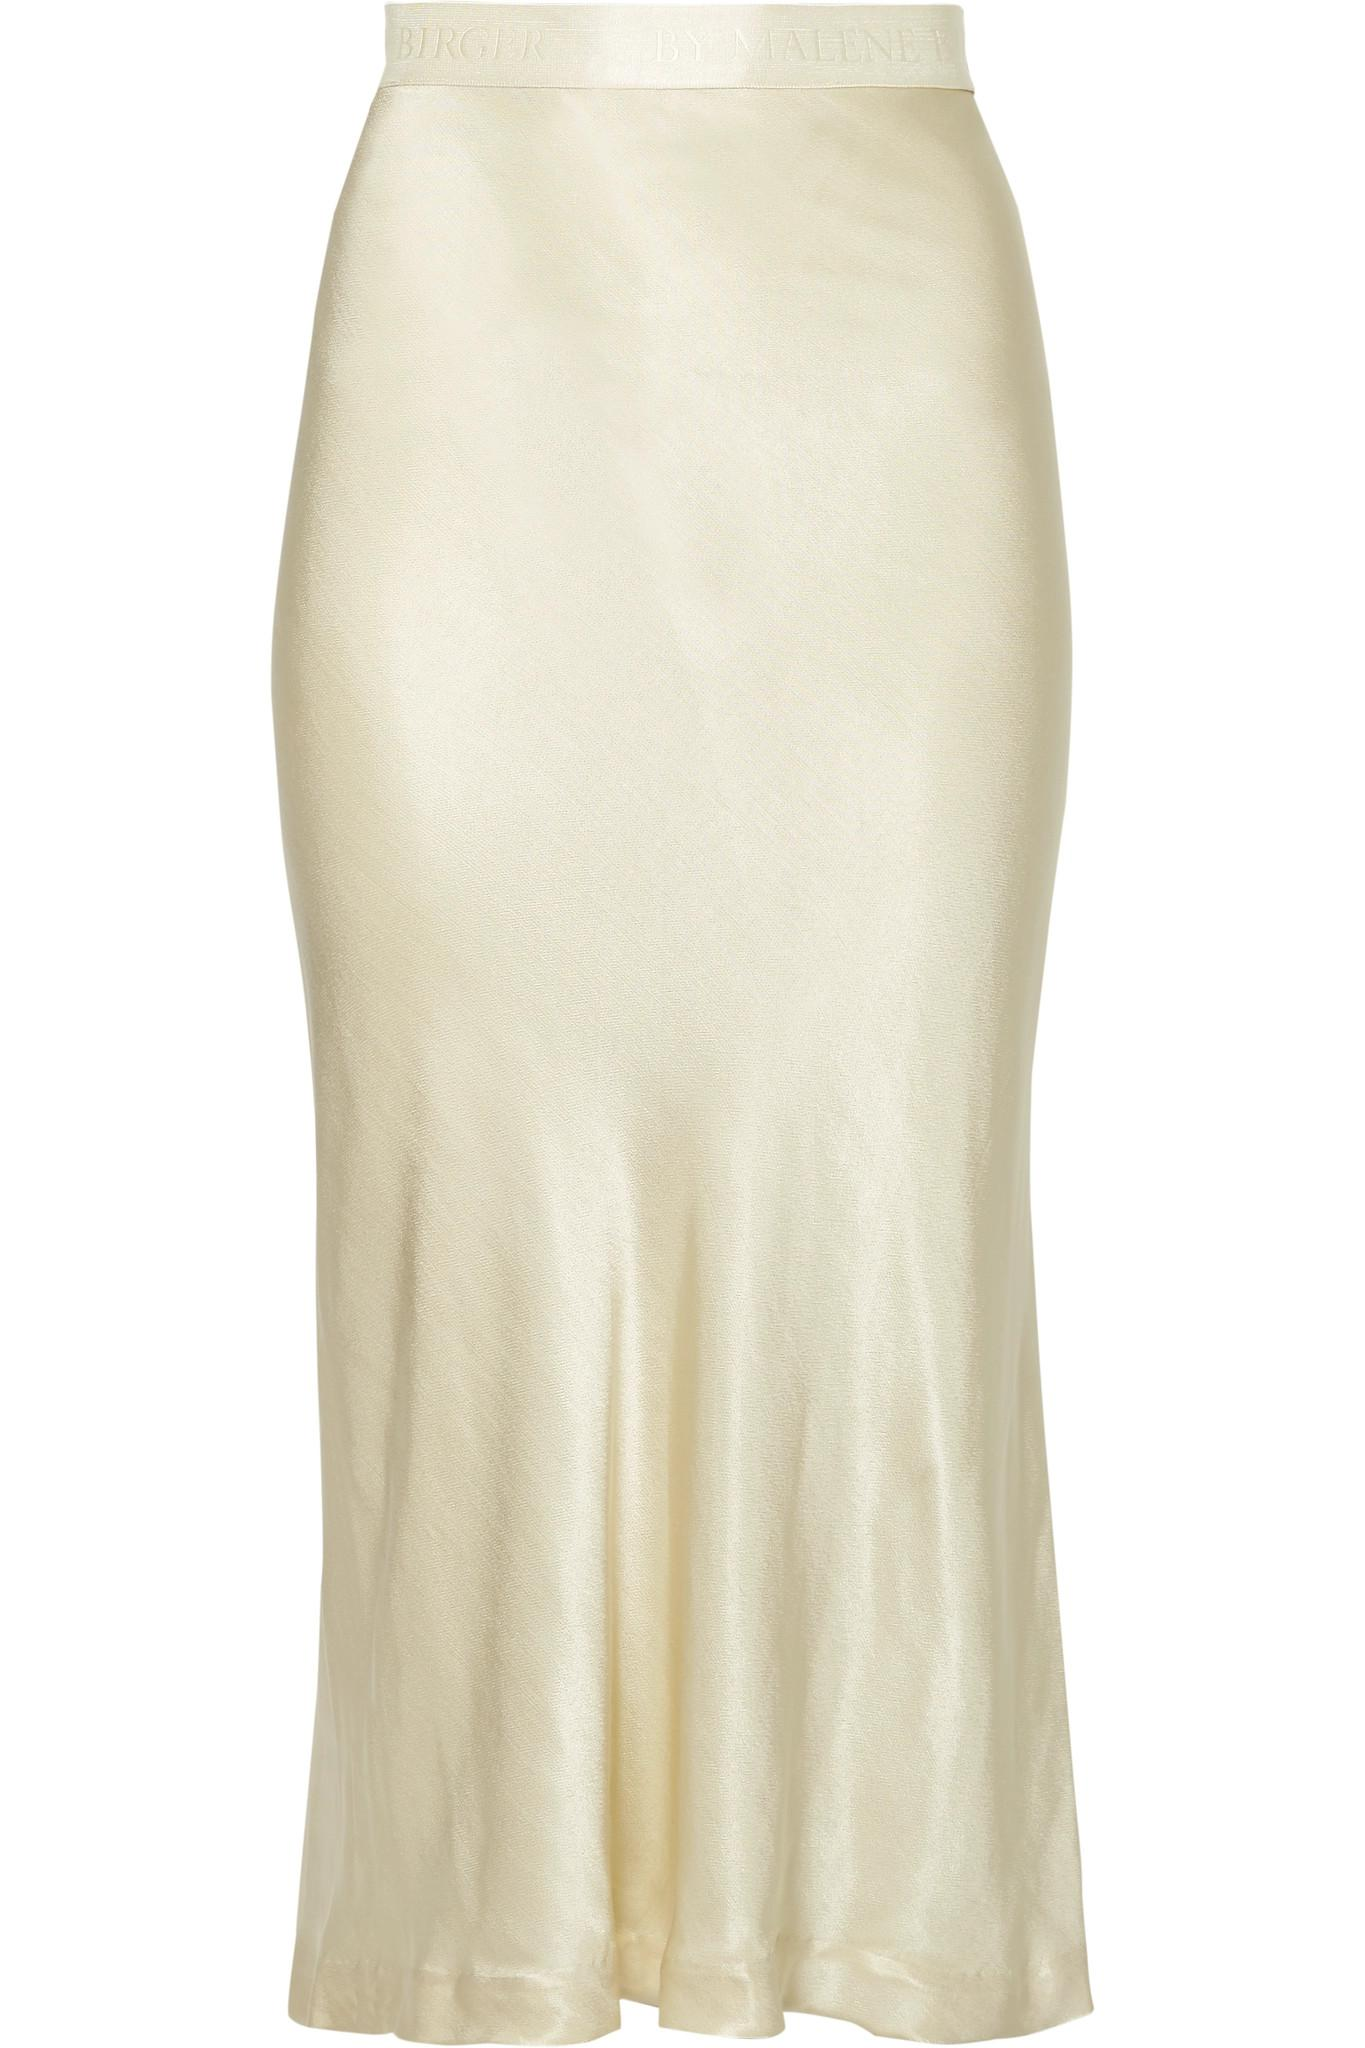 1bfced83a8 By Malene Birger Kimberley Satin Midi Skirt in Natural - Lyst